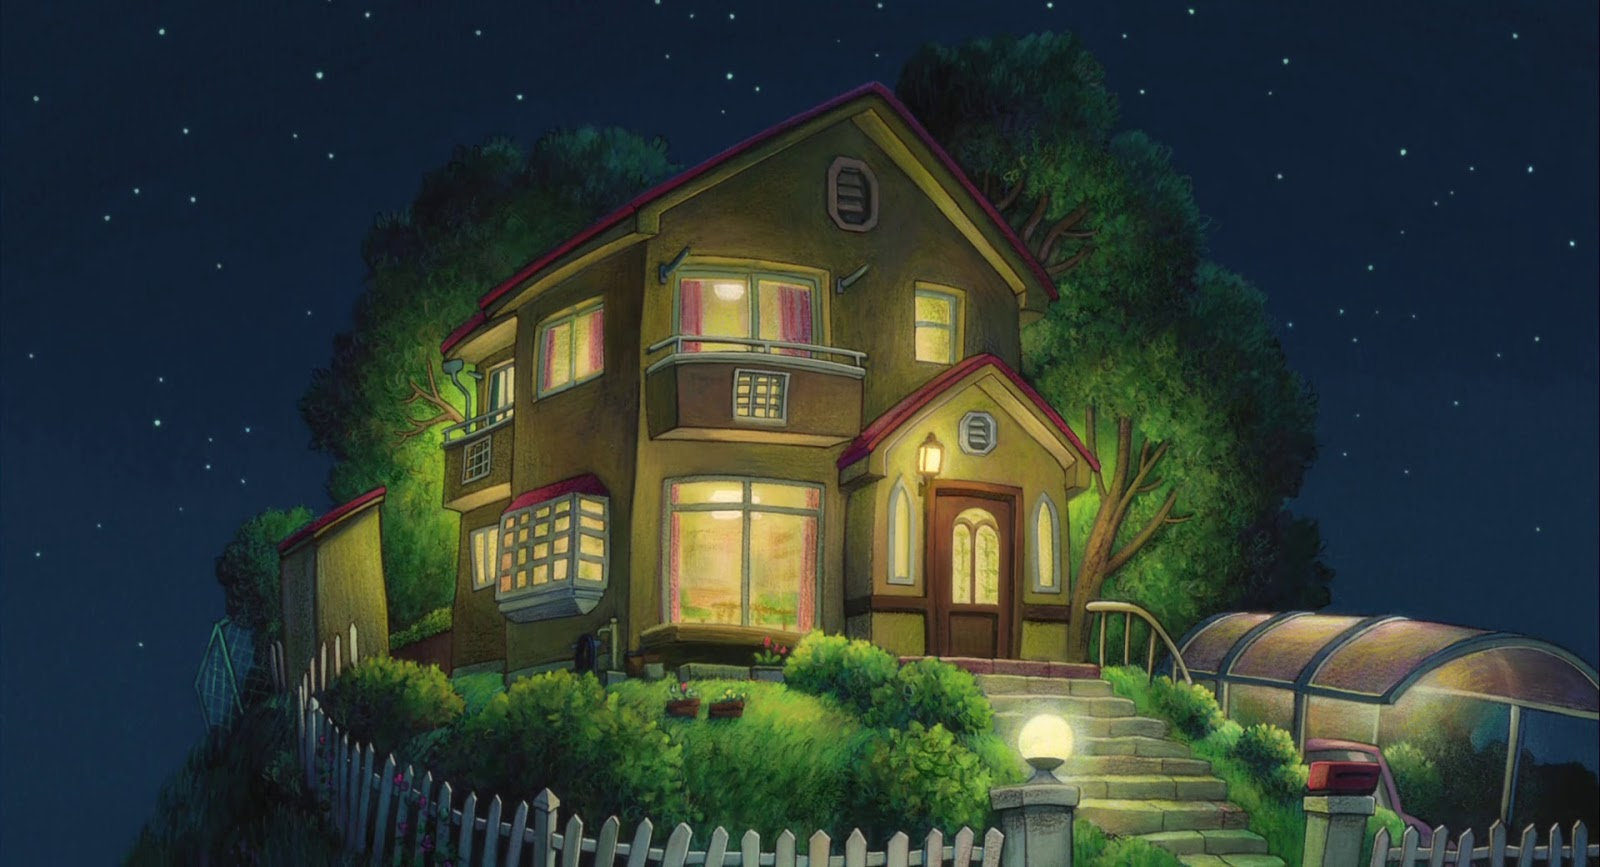 House from the movie ponyo ghibli anime background for Wallpaper home animation